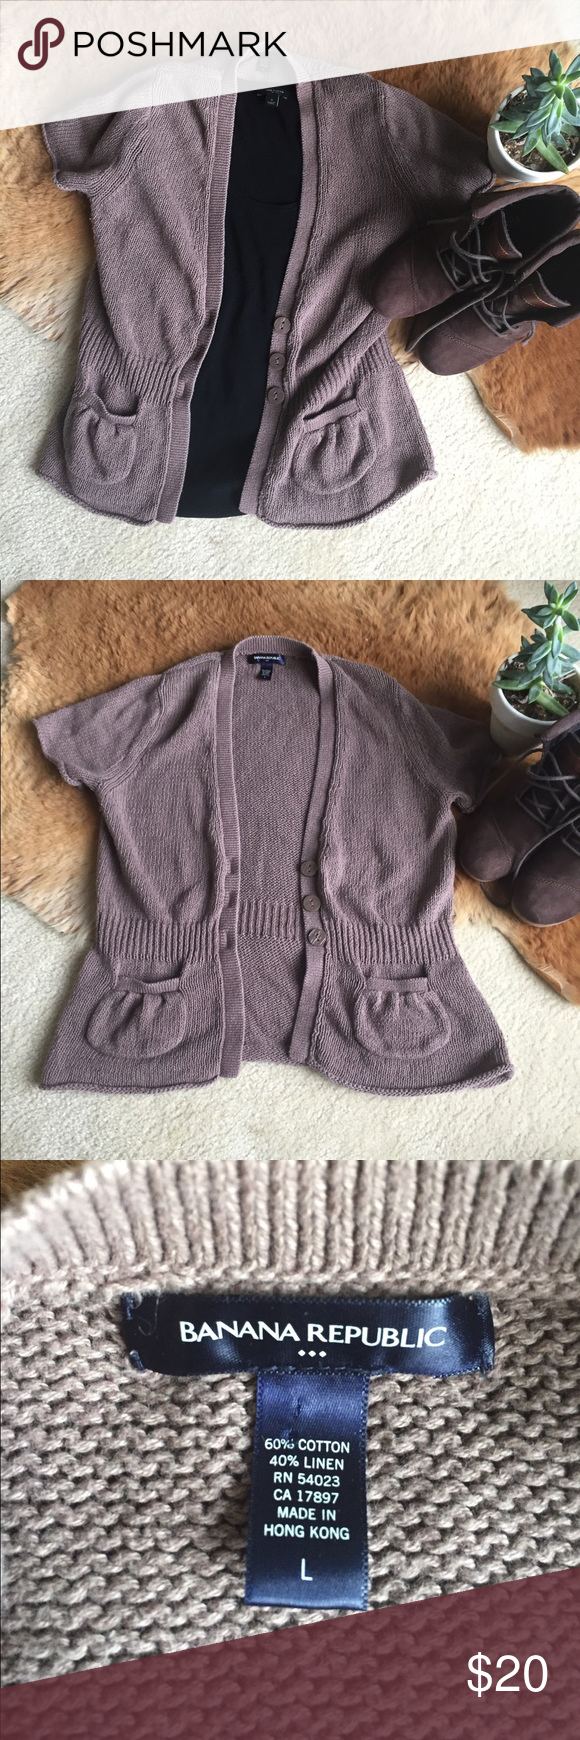 Banana Republic Brown Cardigan Sweater Large | Banana republic ...